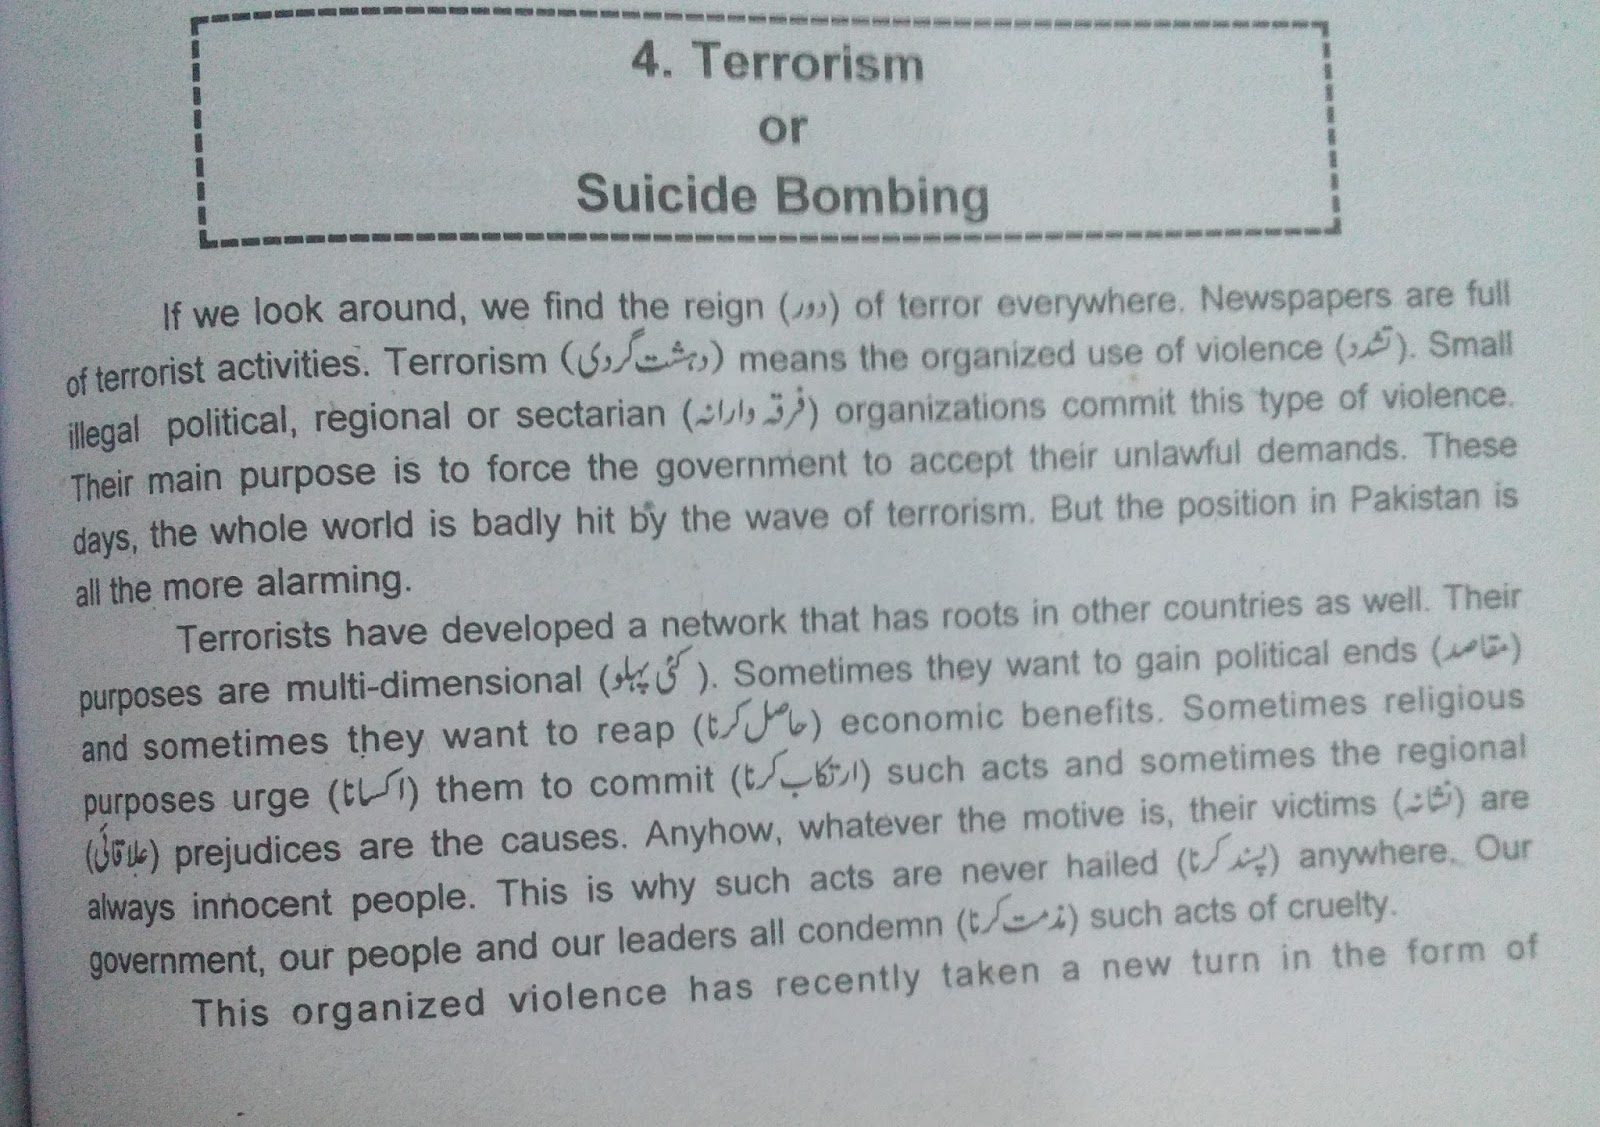 terrorism essays Terrorism is, in the broadest sense, the use of intentionally indiscriminate violence as a means to create terror among masses of people.